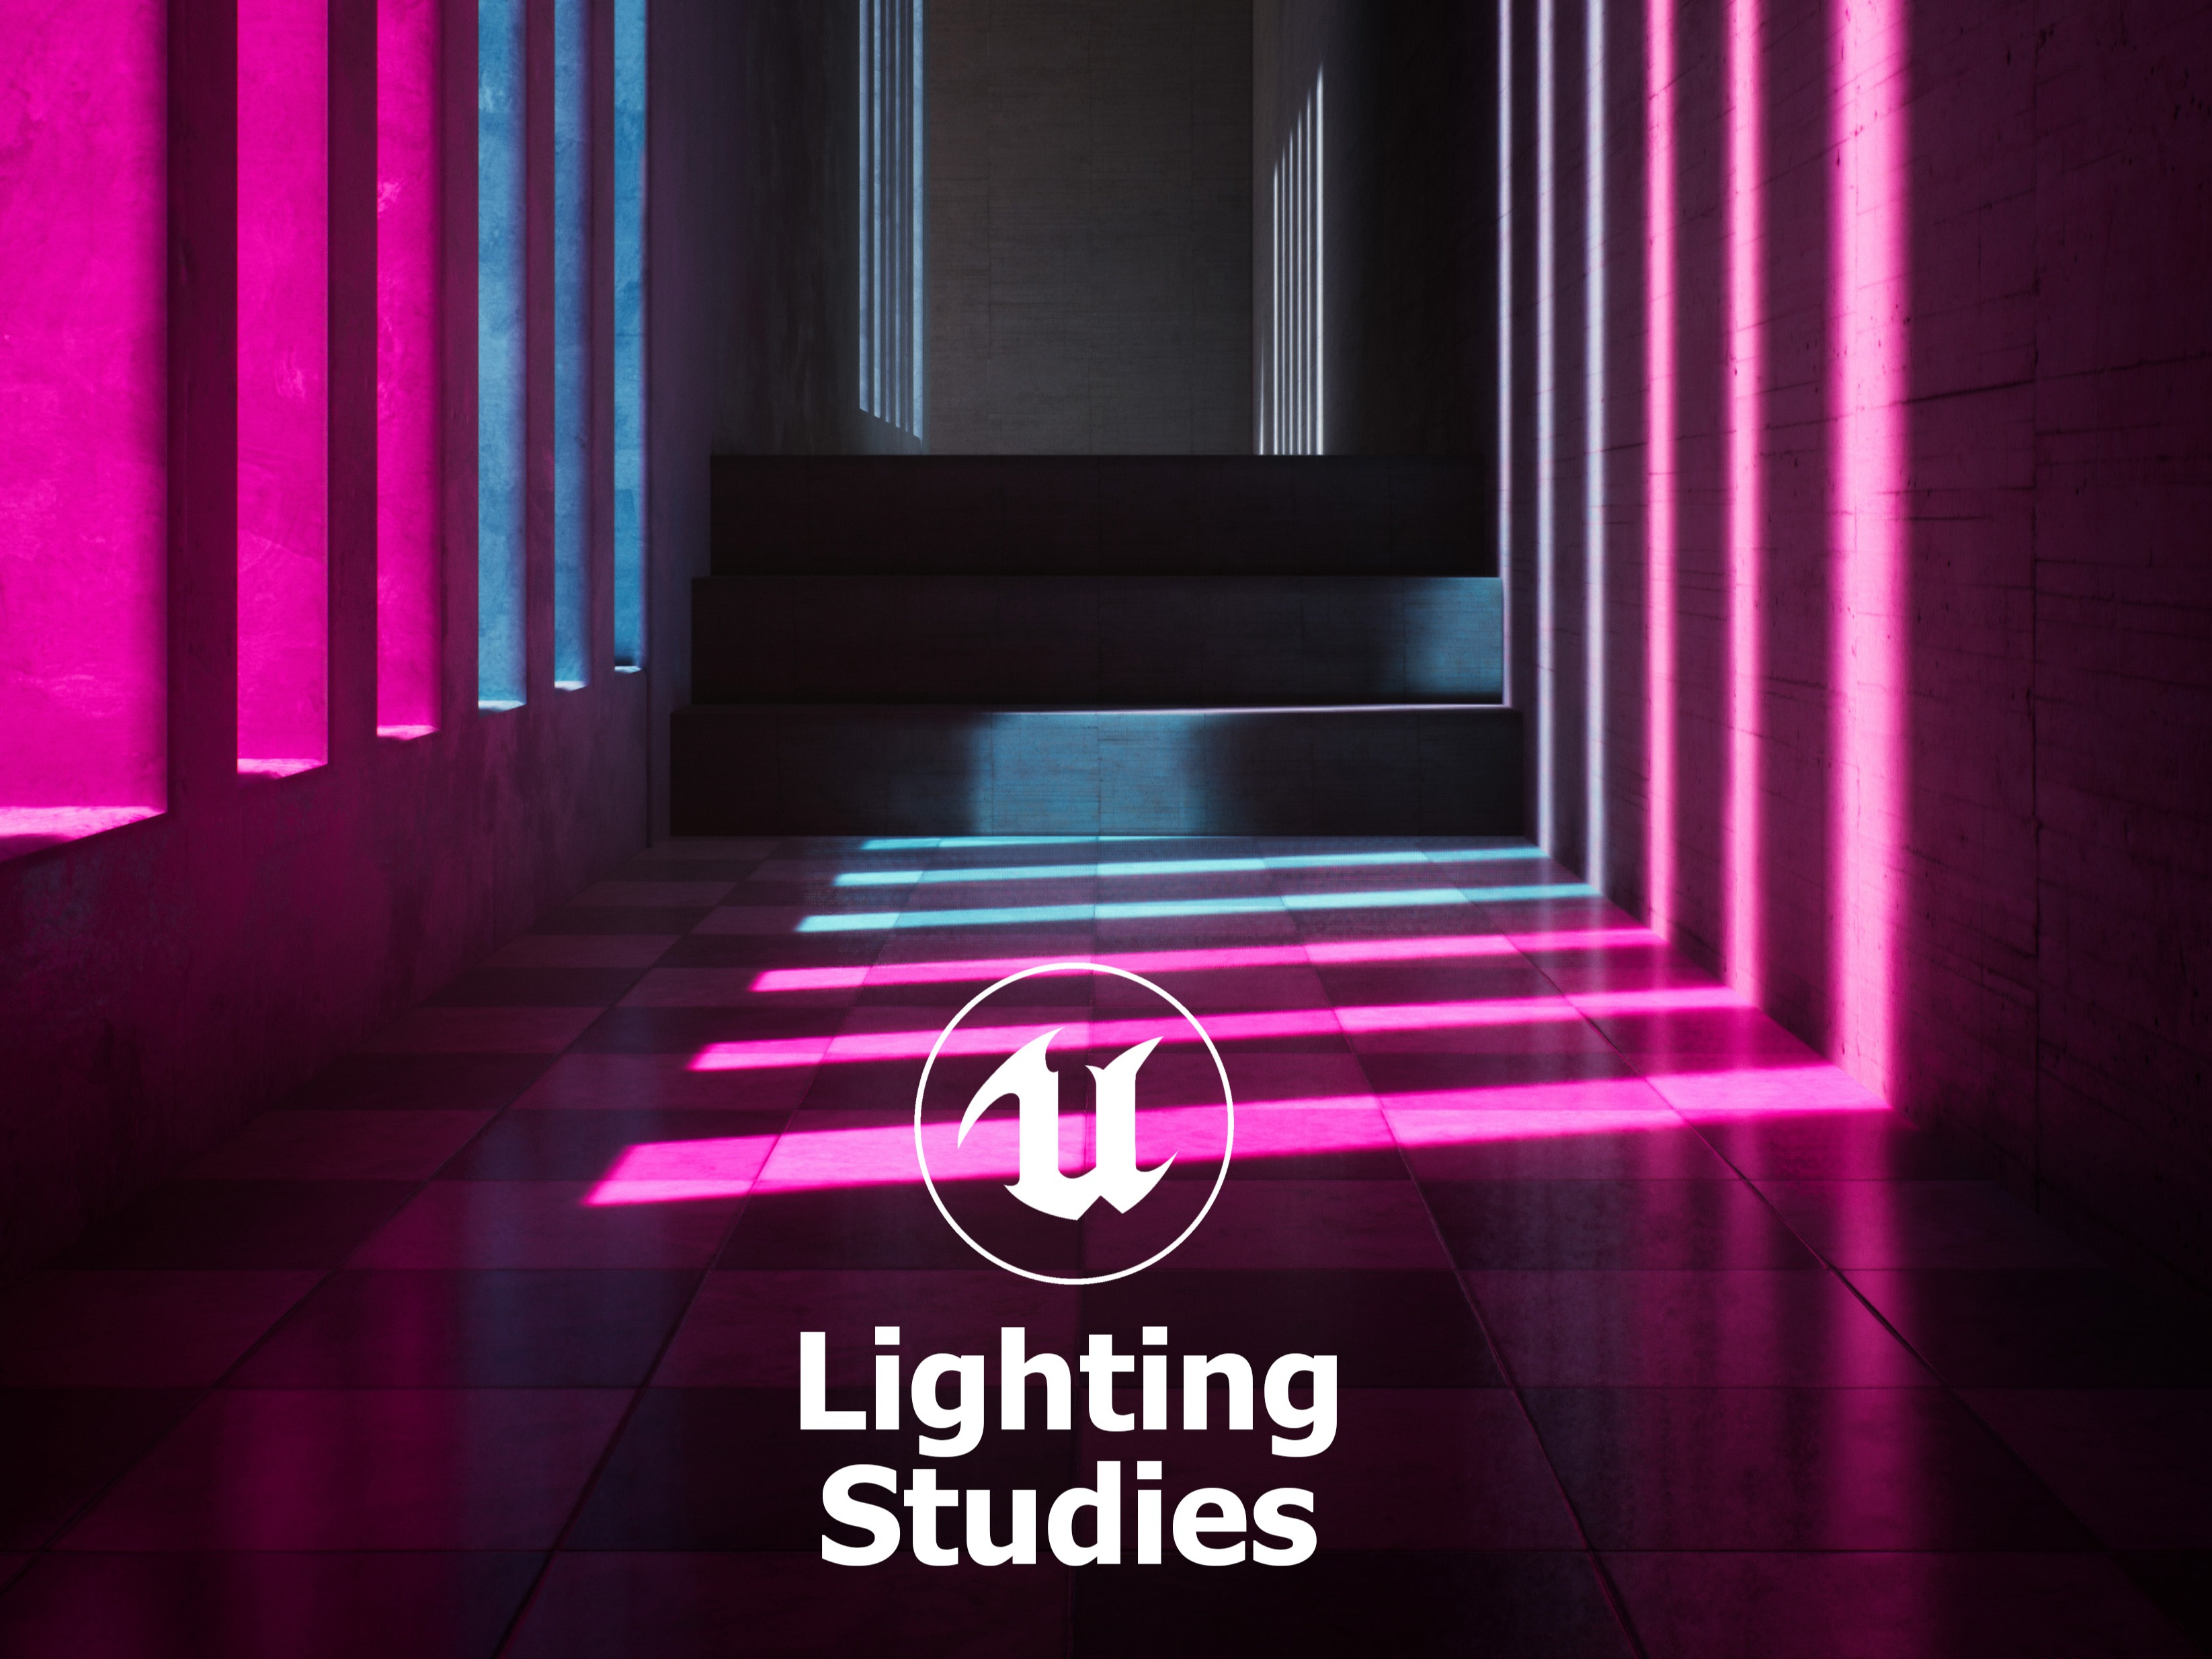 Ue4 Lighting Studies